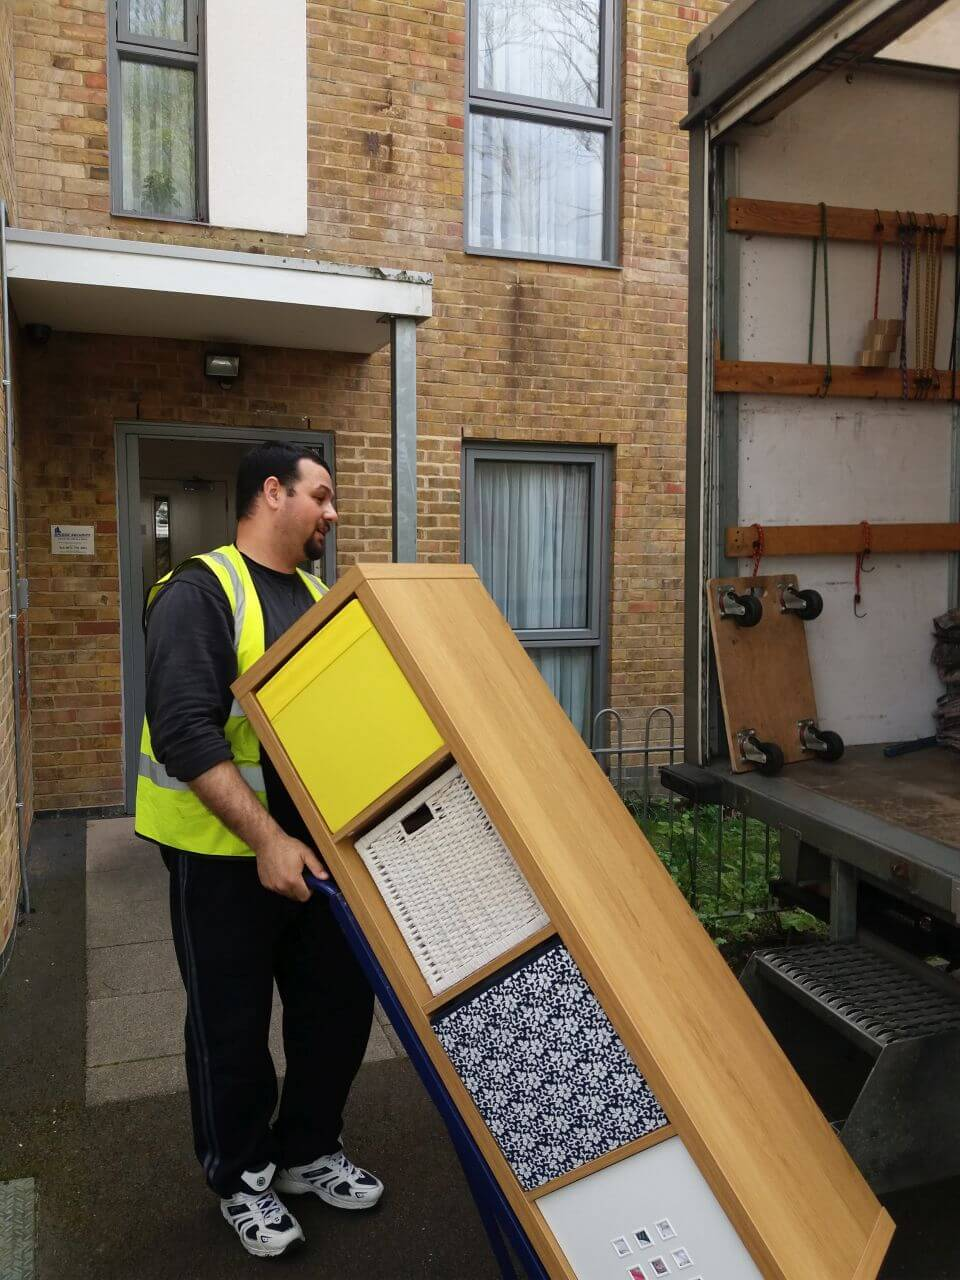 Peckham moving service